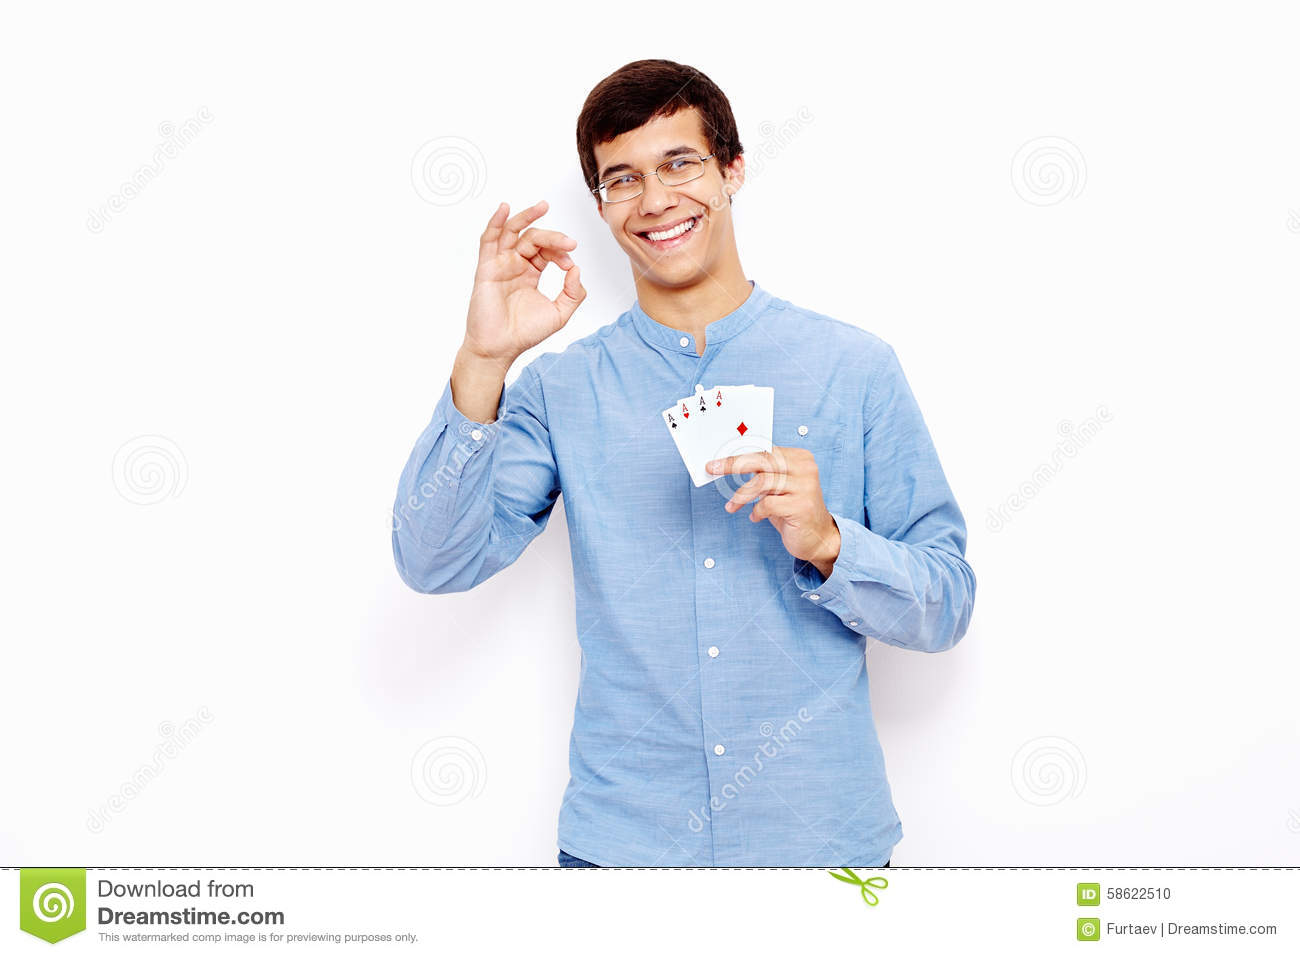 bird in hand hispanic single men Learn how to go beyond just flipping the bird with this illustrated guide to rude hand gestures all around the world, from asking for sex in the middle east to .